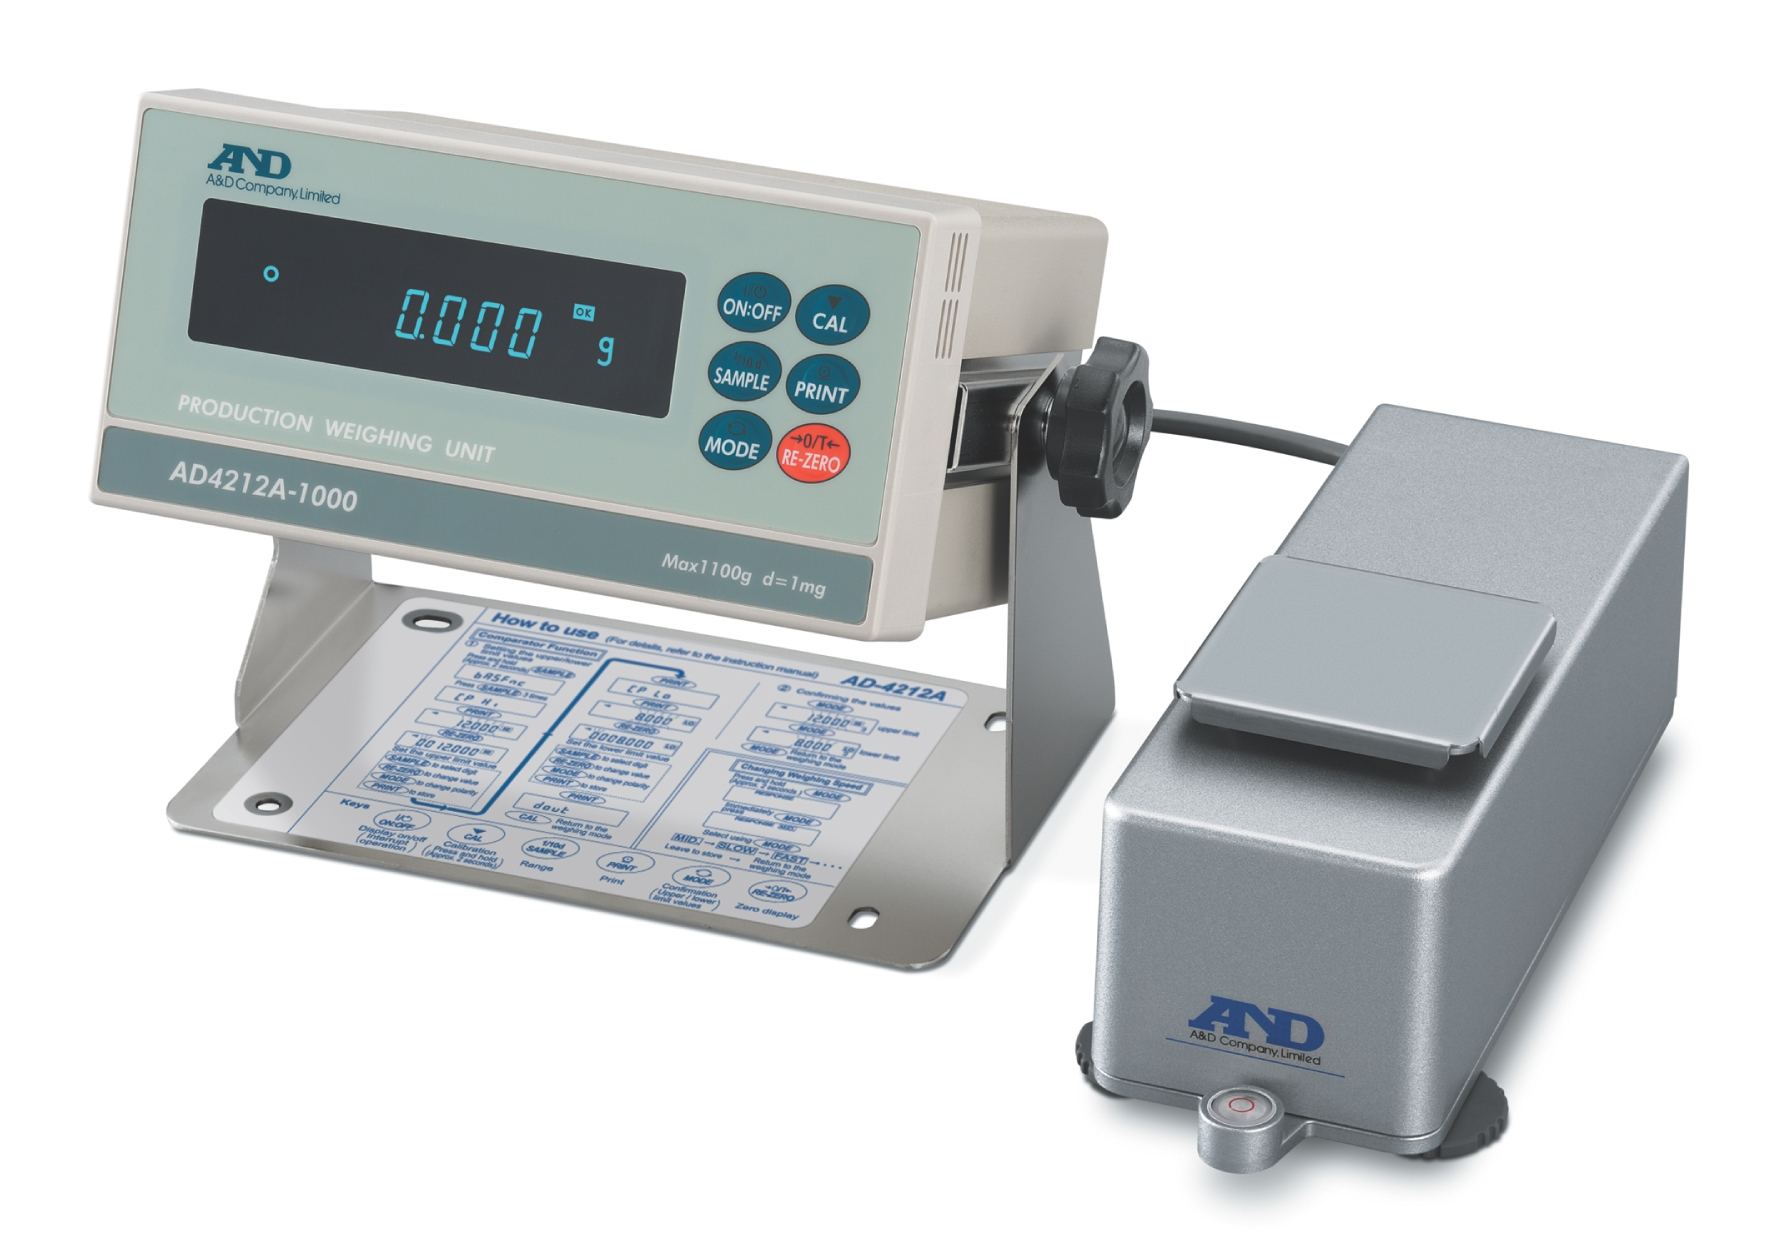 AD-4212A Production Weighing System - Option